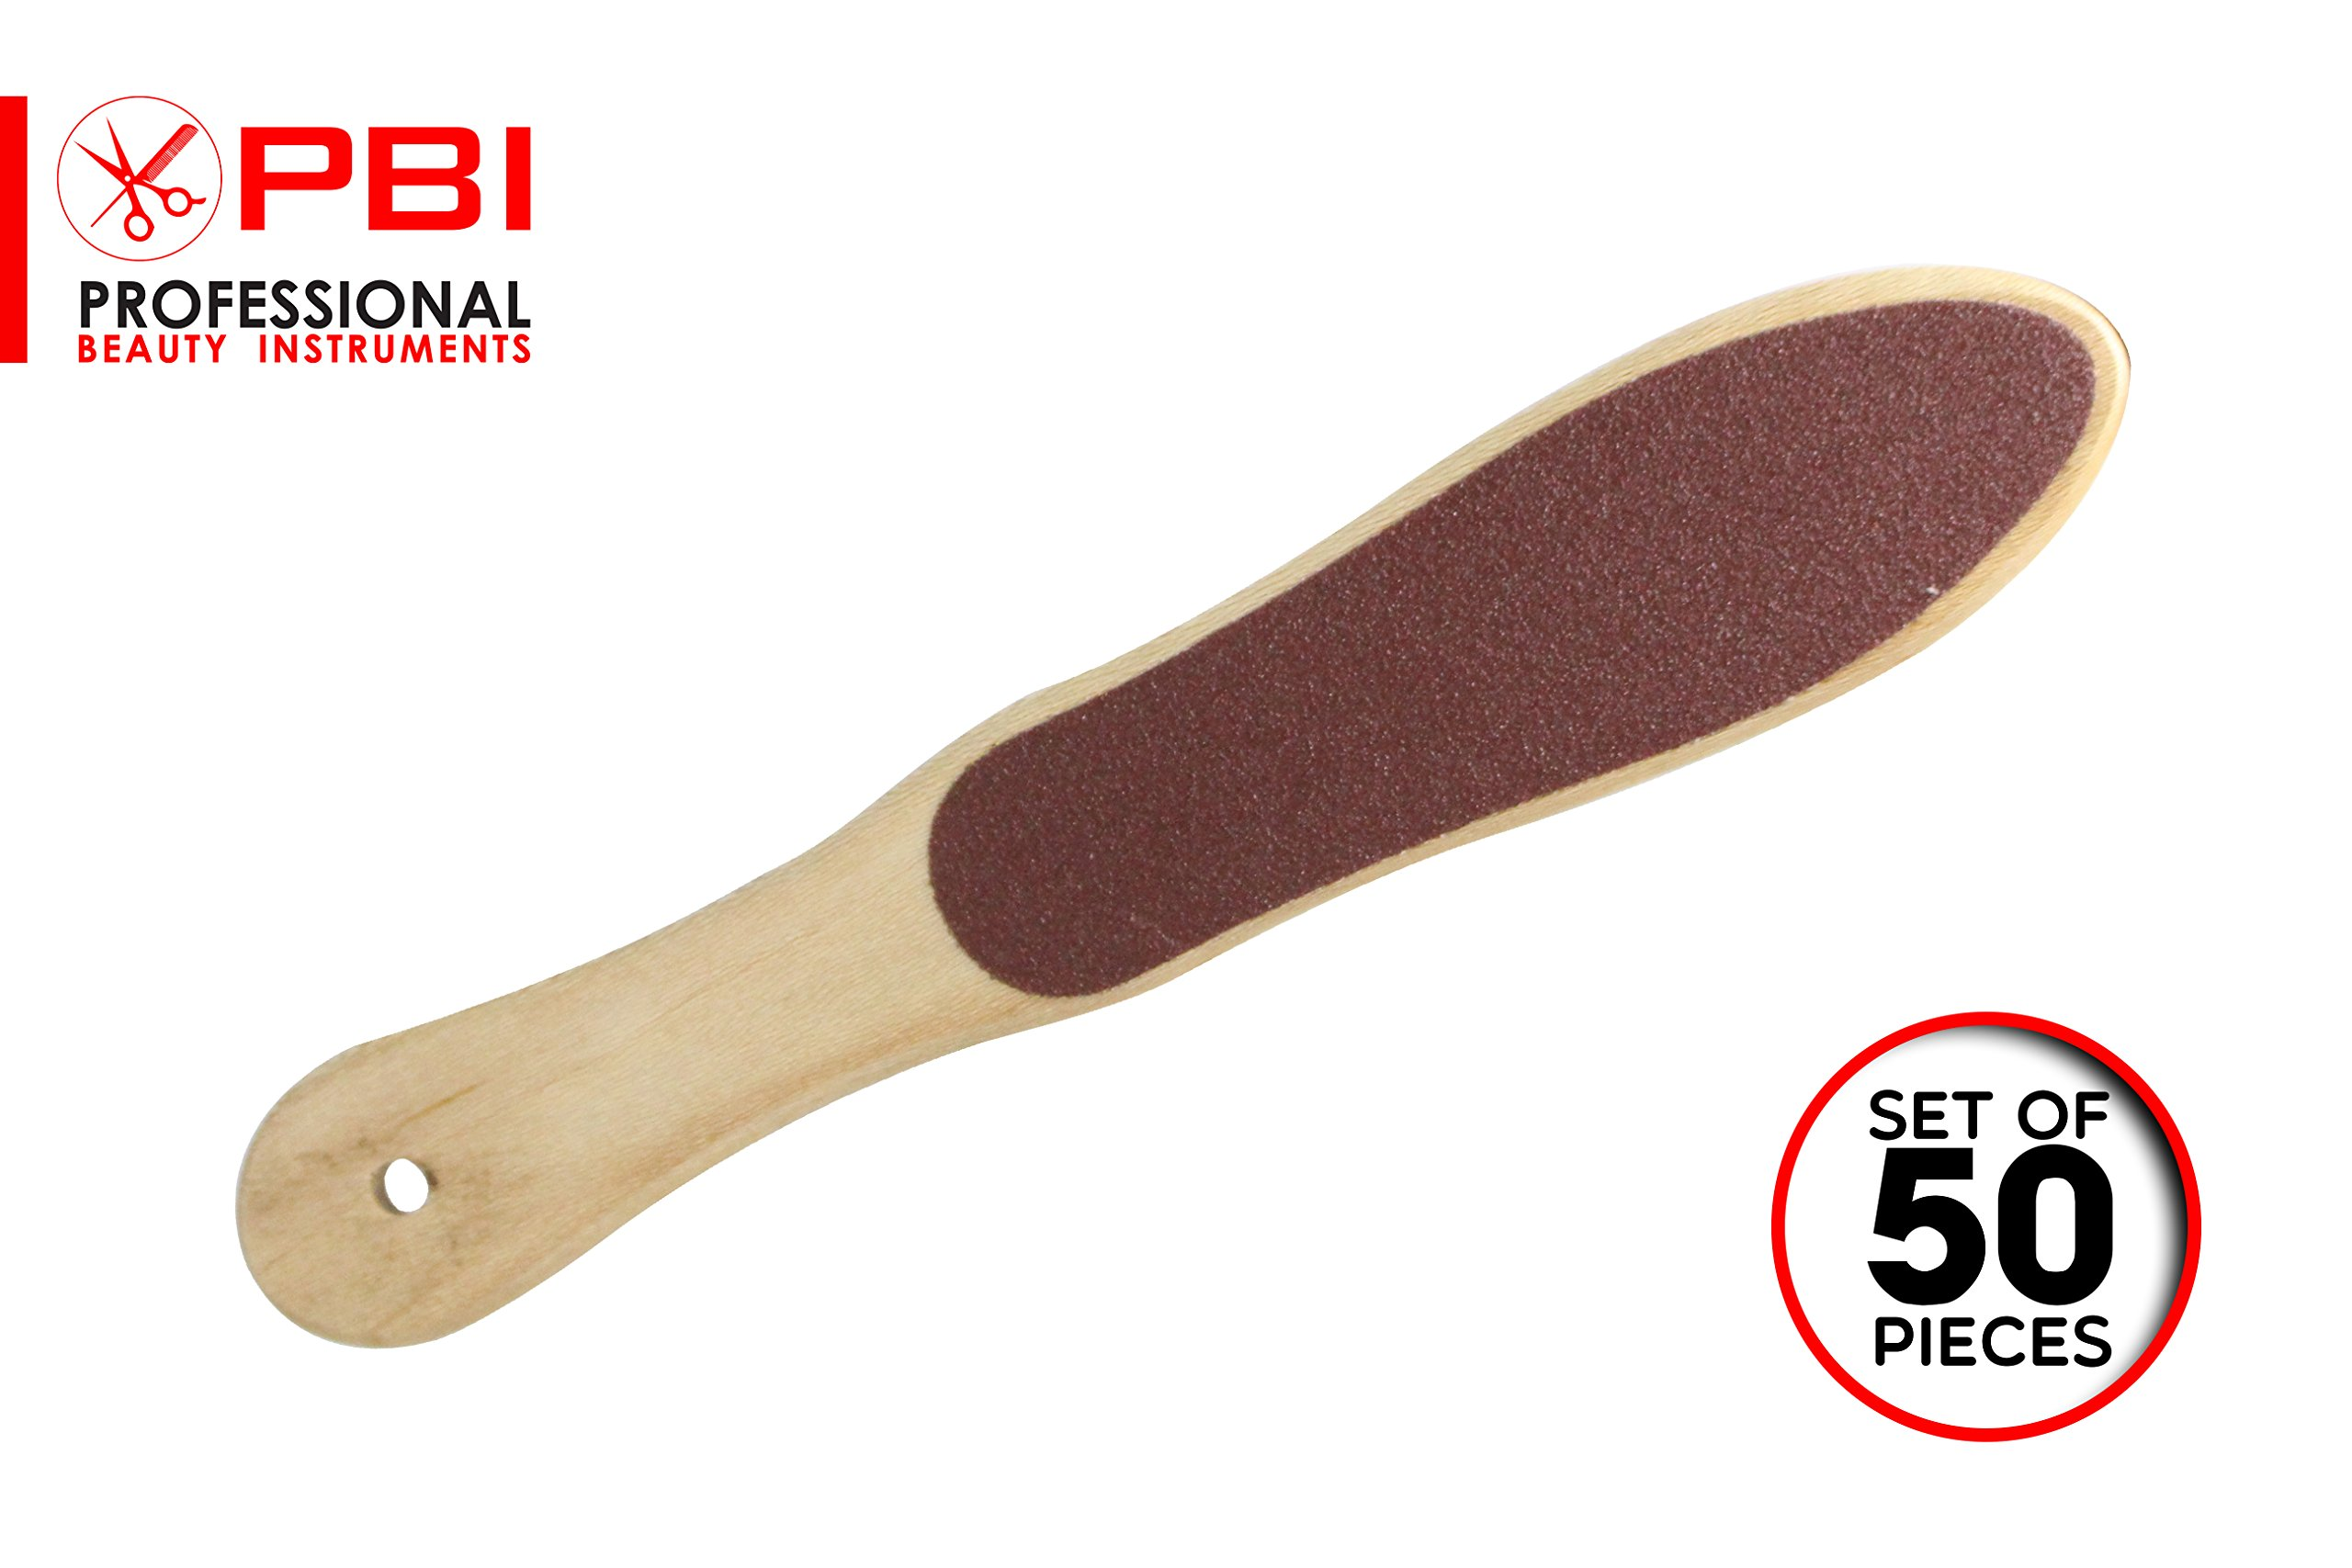 Foot Rasp - Callus File - Foot Scrubber - Pedicure File - Double Sided Foot File - Light Weight Wooden Foot File - 10.2 inch - 50 pieces set from PBI